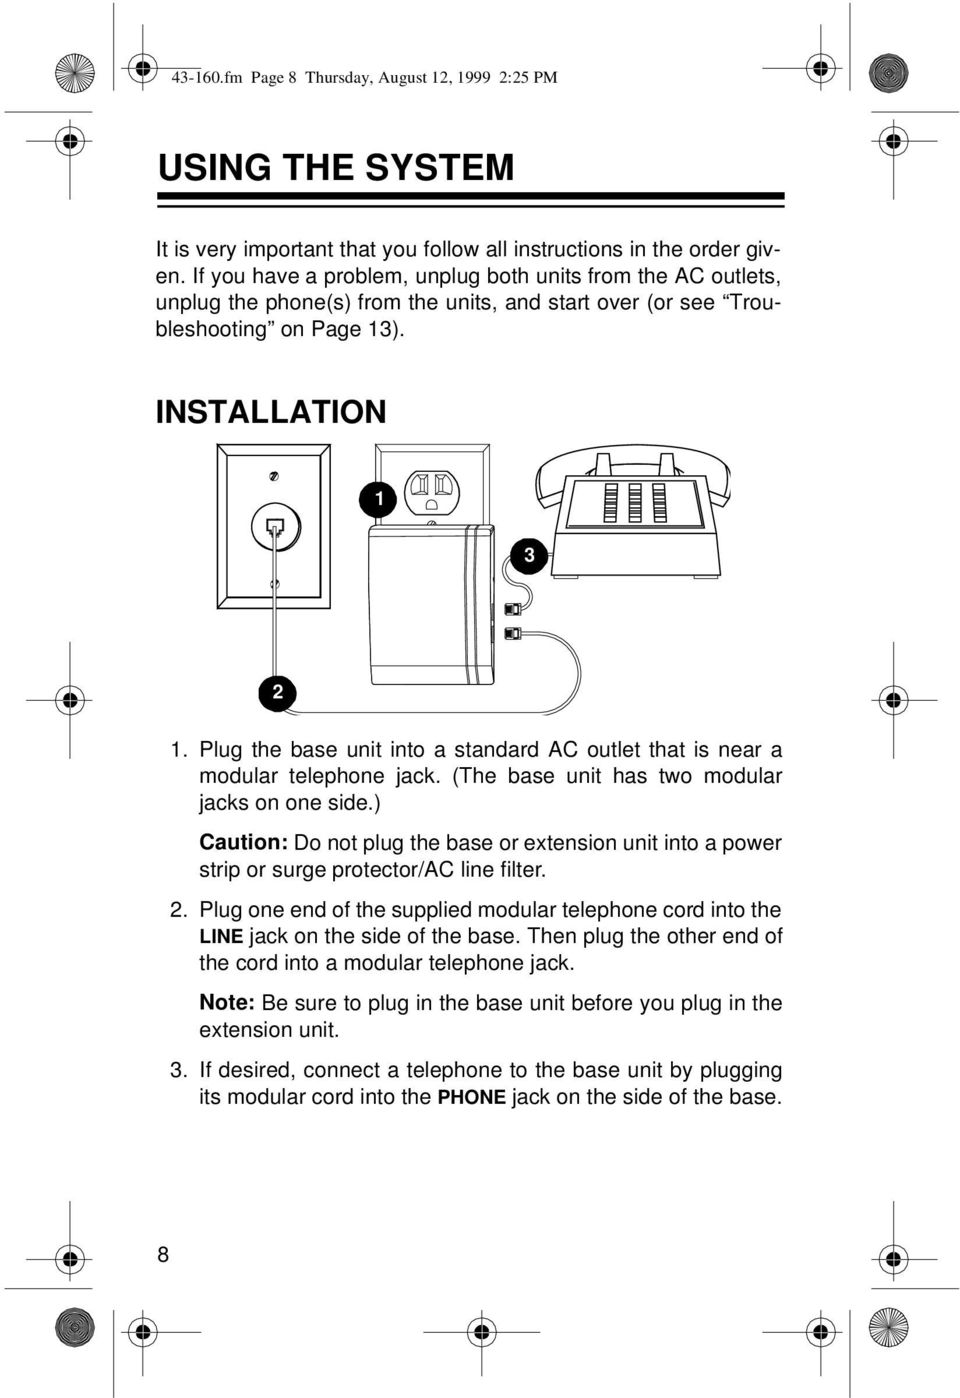 Wireless Phone Jack System Pdf Modular Instruction Sheet On Usoc Rj45 Wiring Plug The Base Unit Into A Standard Ac Outlet That Is Near Telephone